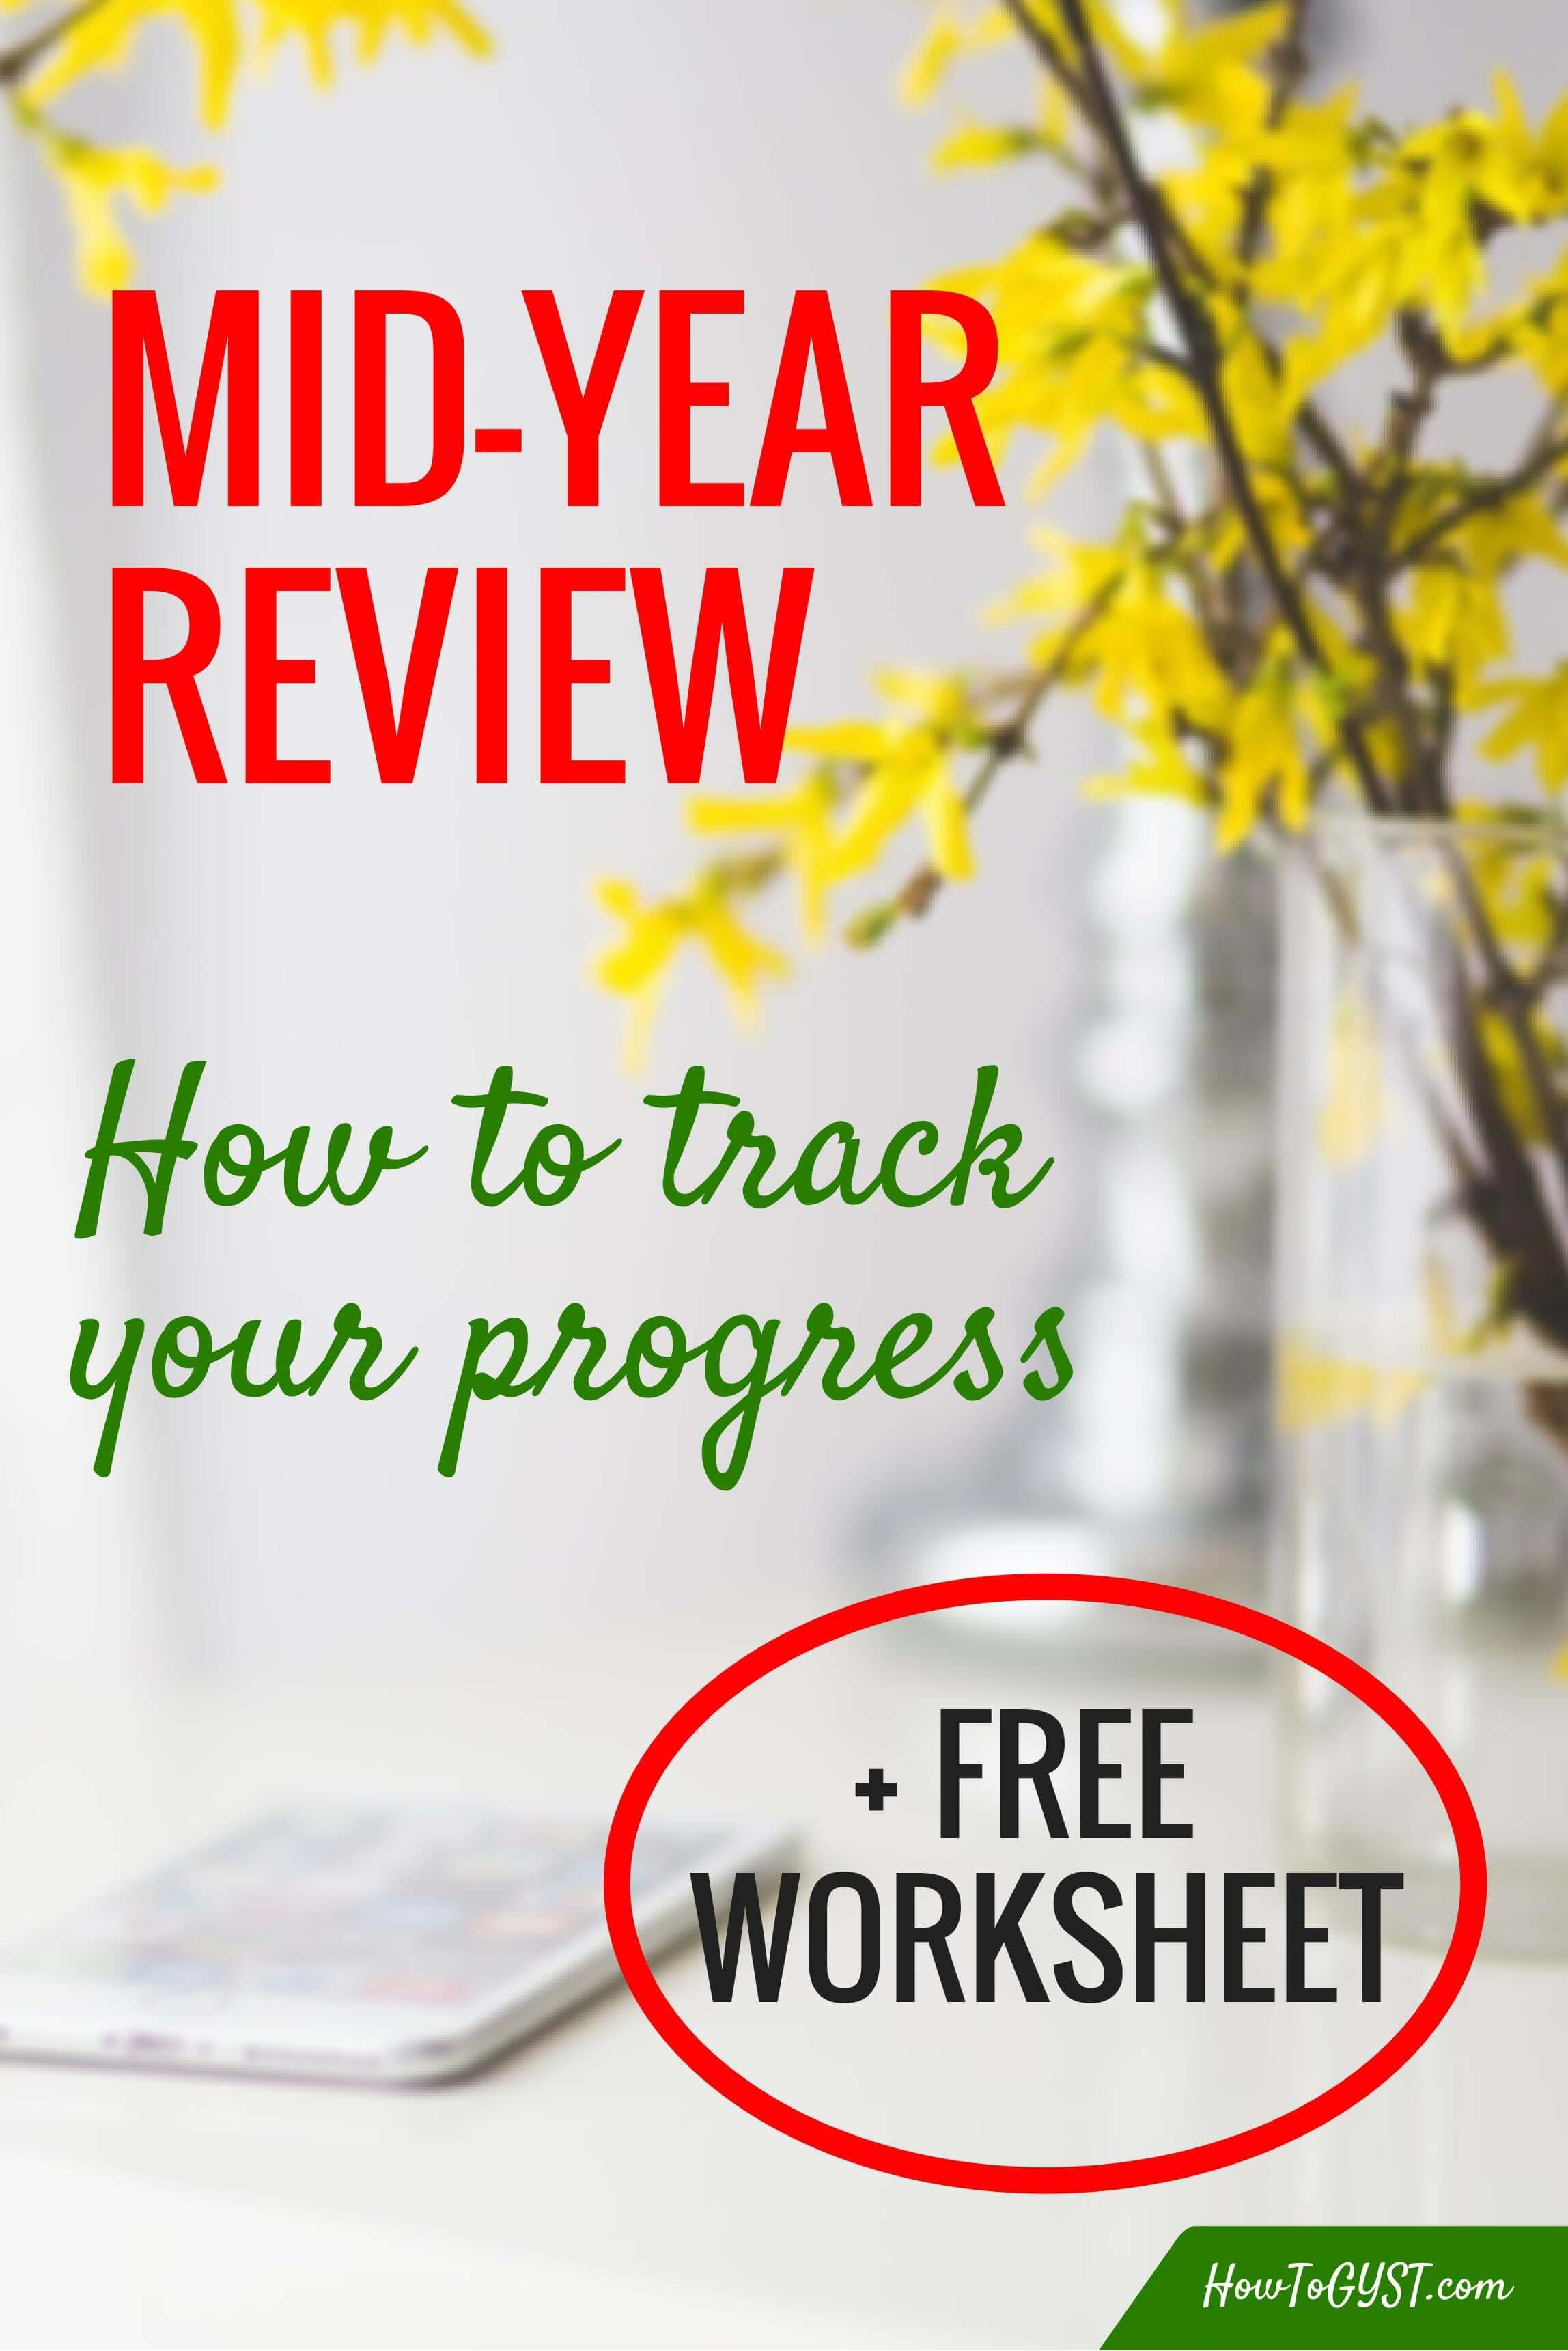 Mid Year Review Free Worksheet